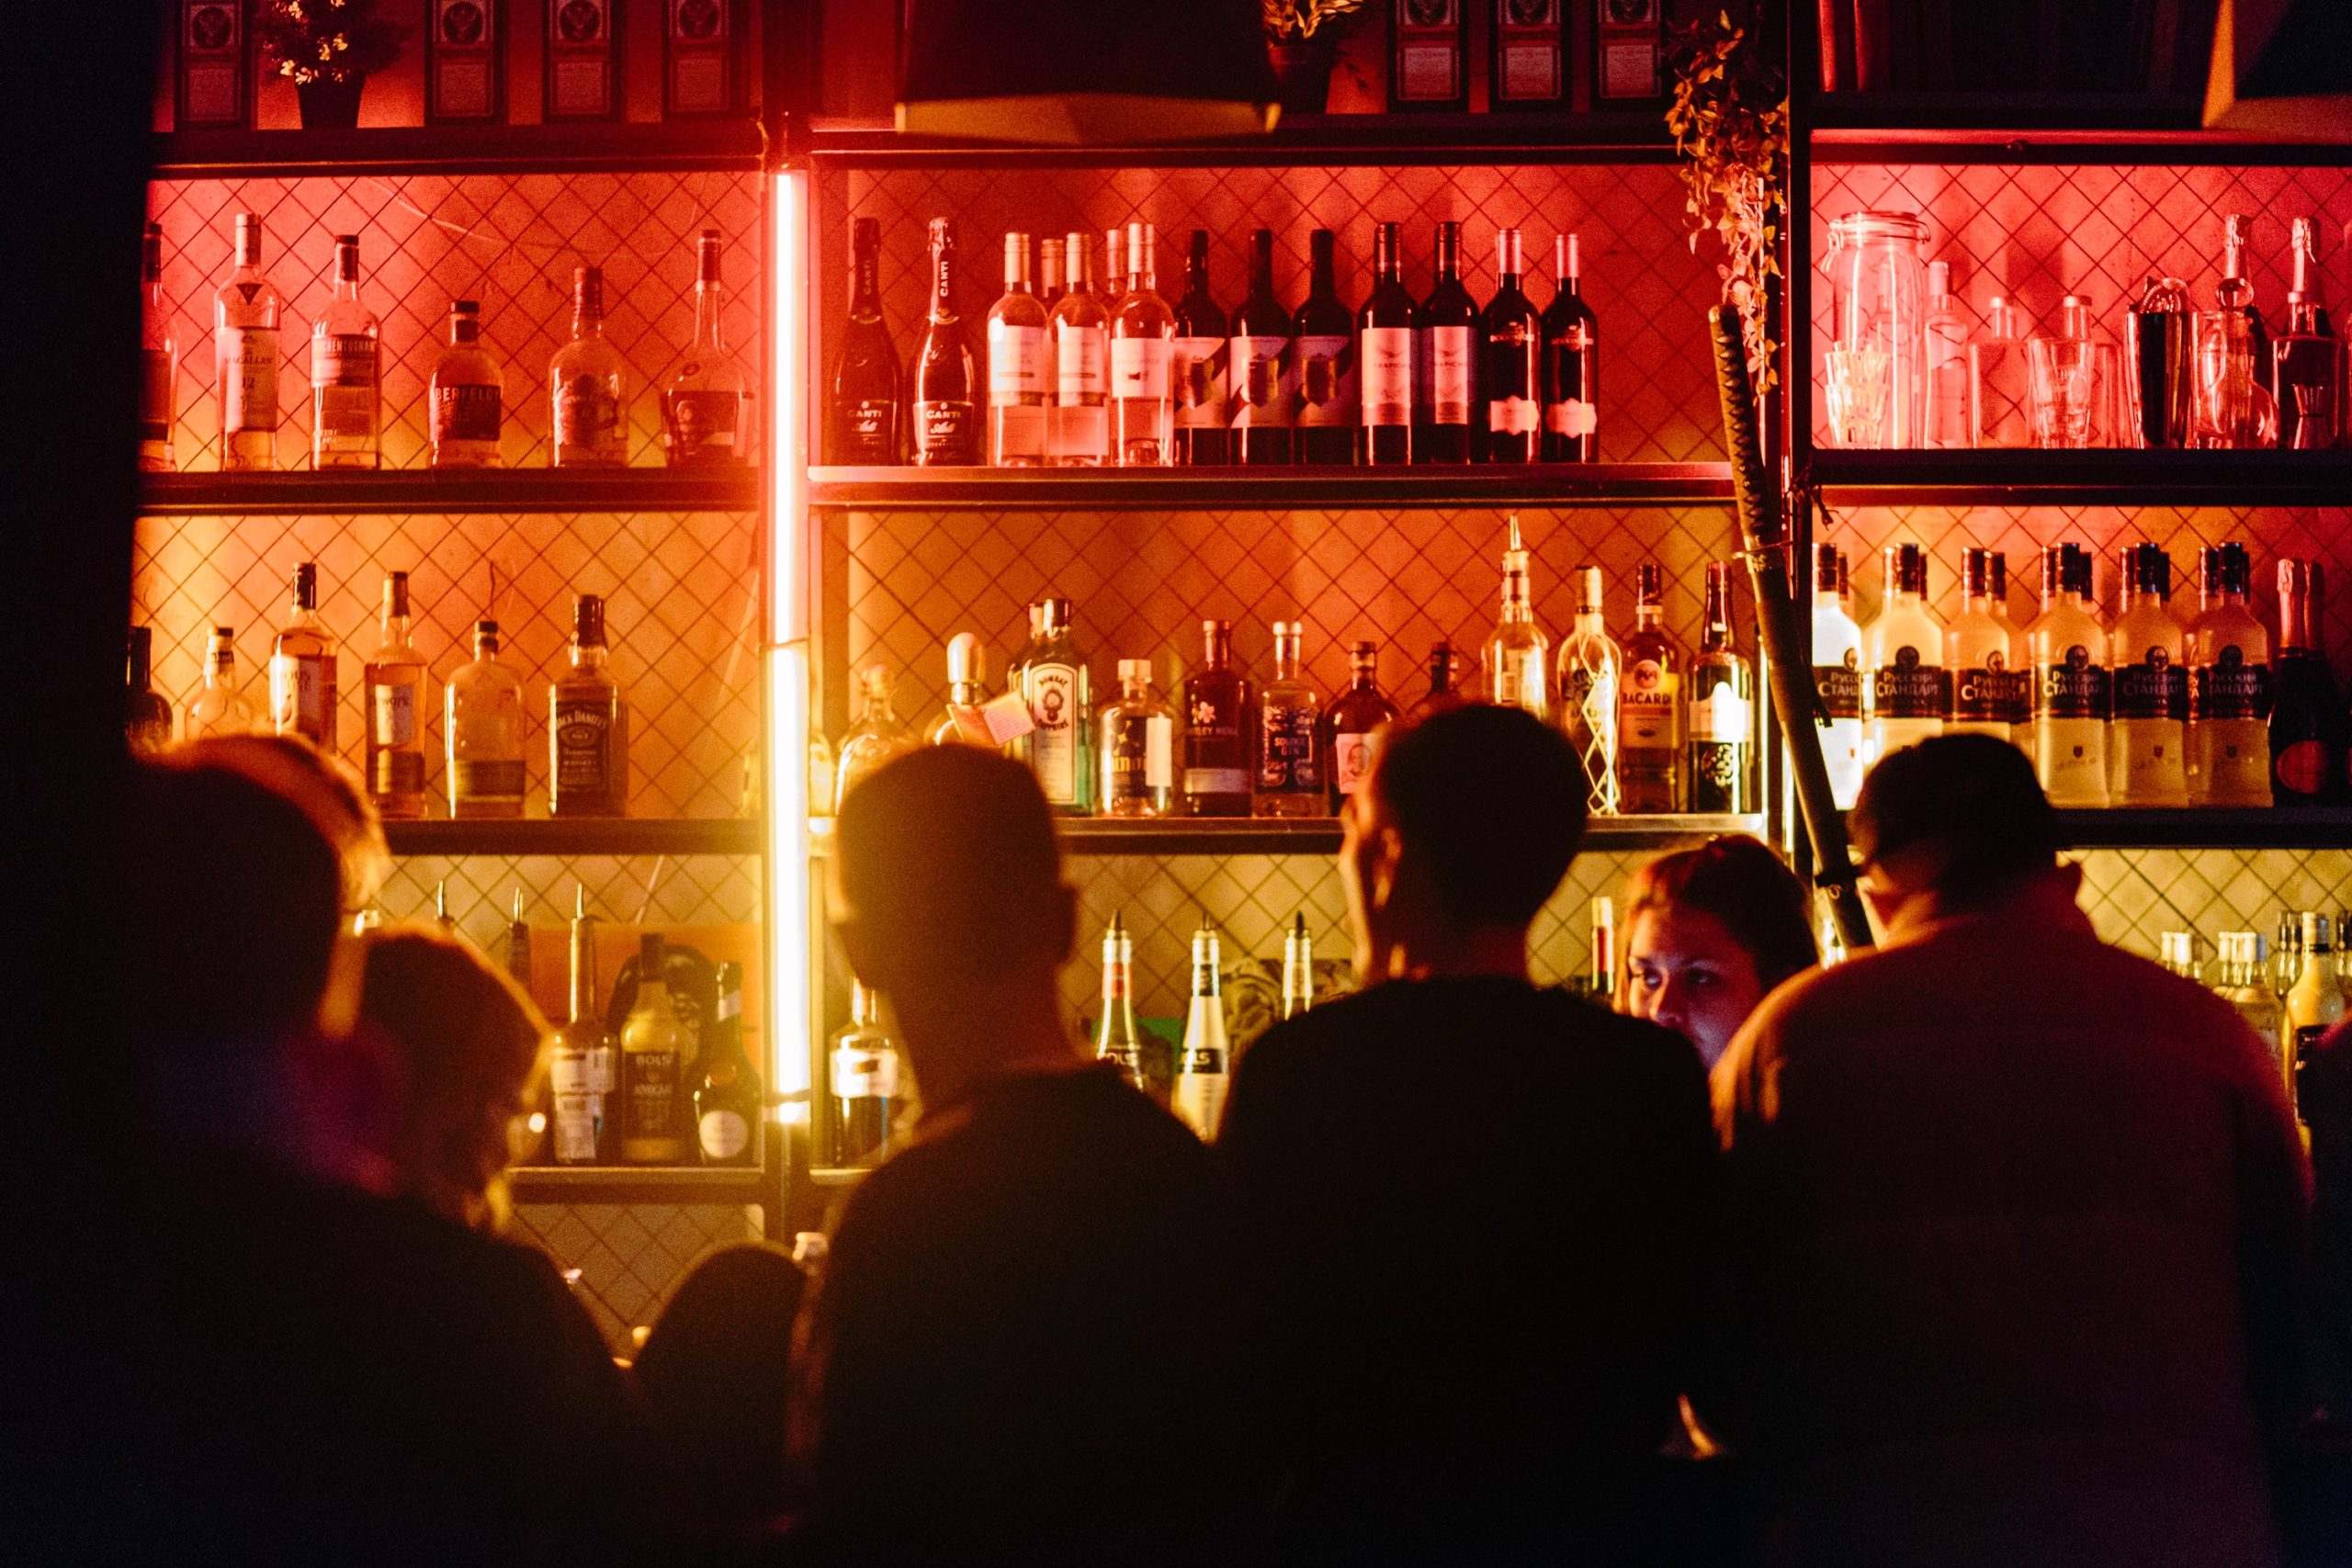 Bartenders Face Tension due to Mask Ordinance in Doing Business